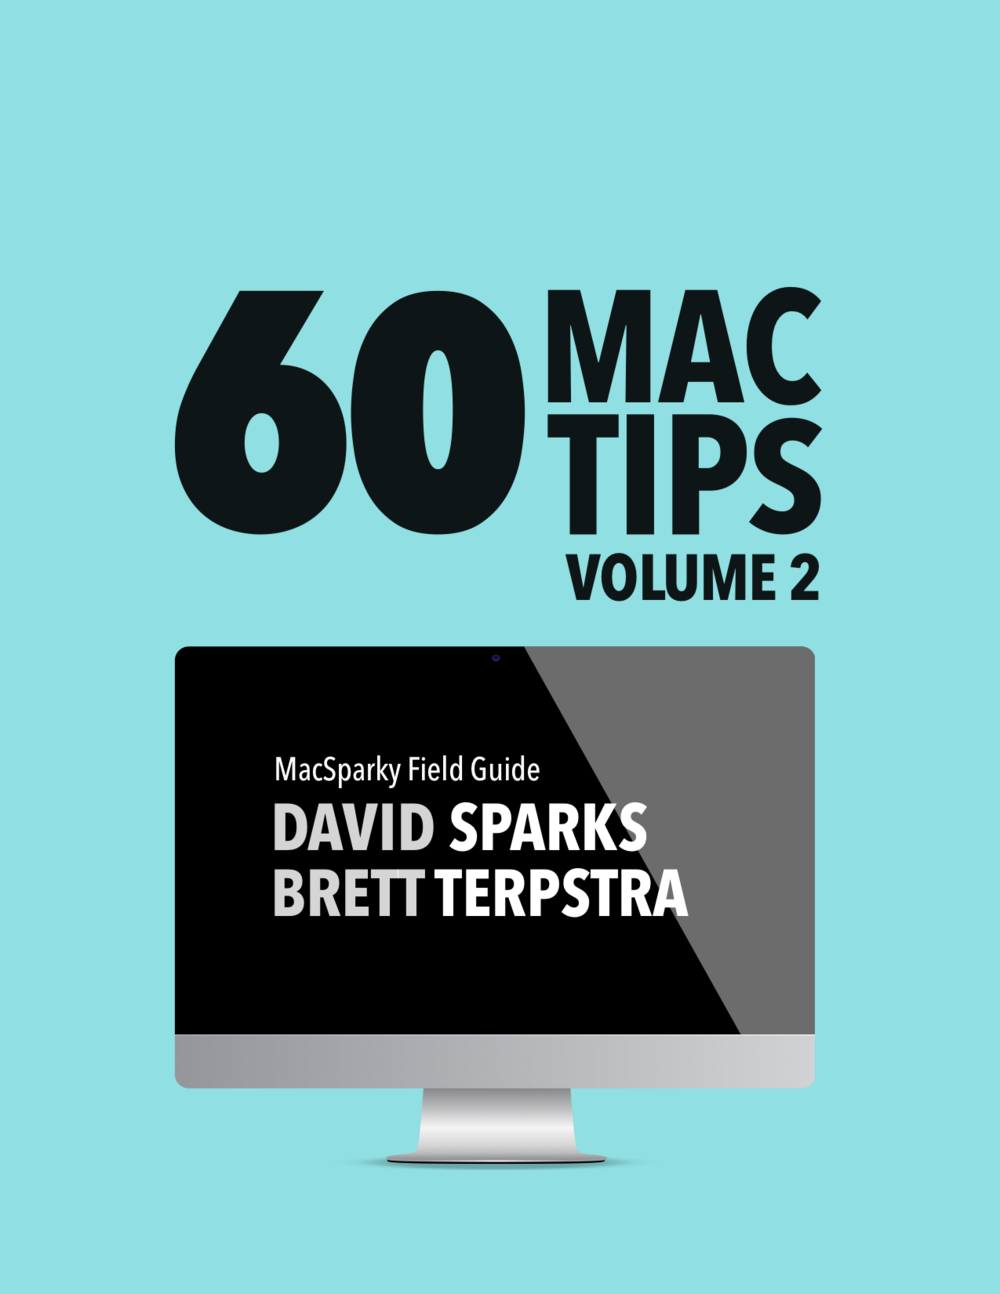 60 Mac Tips V2 Cover.png